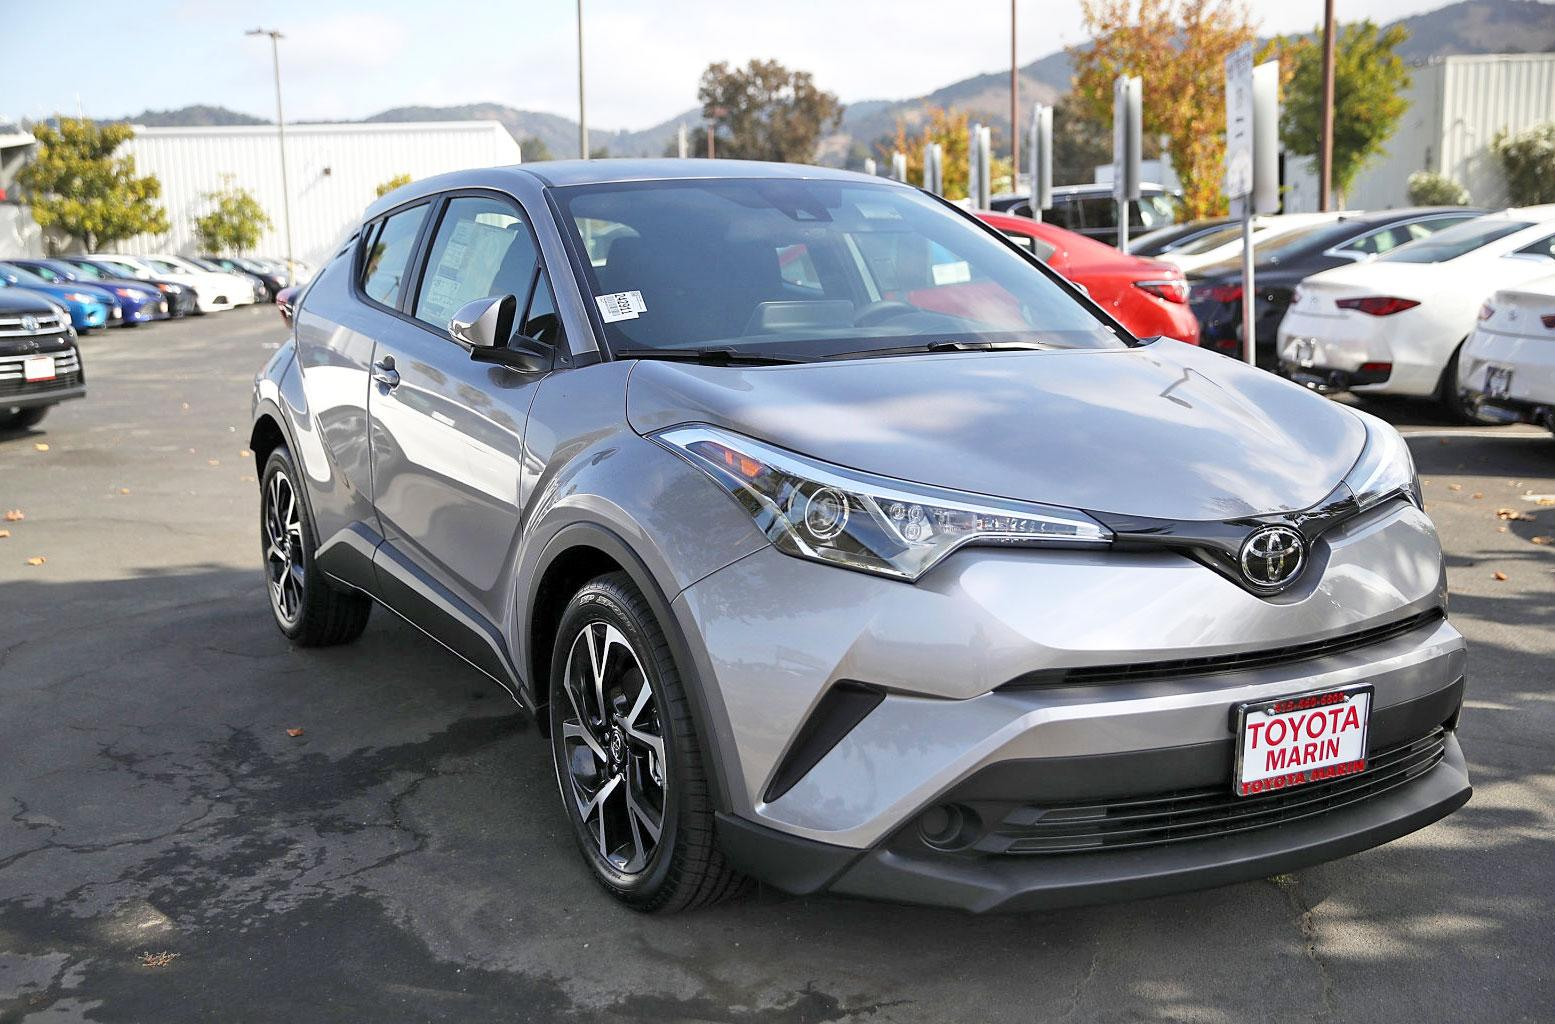 Toyota Recalls Over A Million Hybrid Vehicles Due To Fire Risk